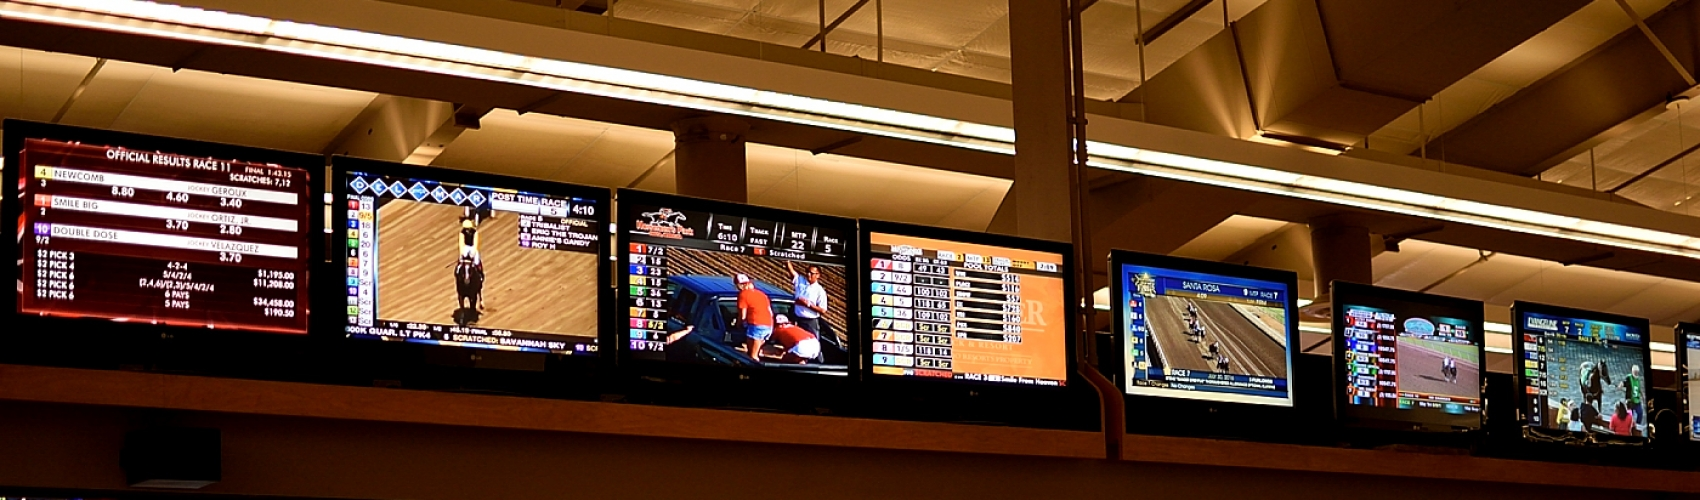 Simulcasting betting sports betting africa online betting